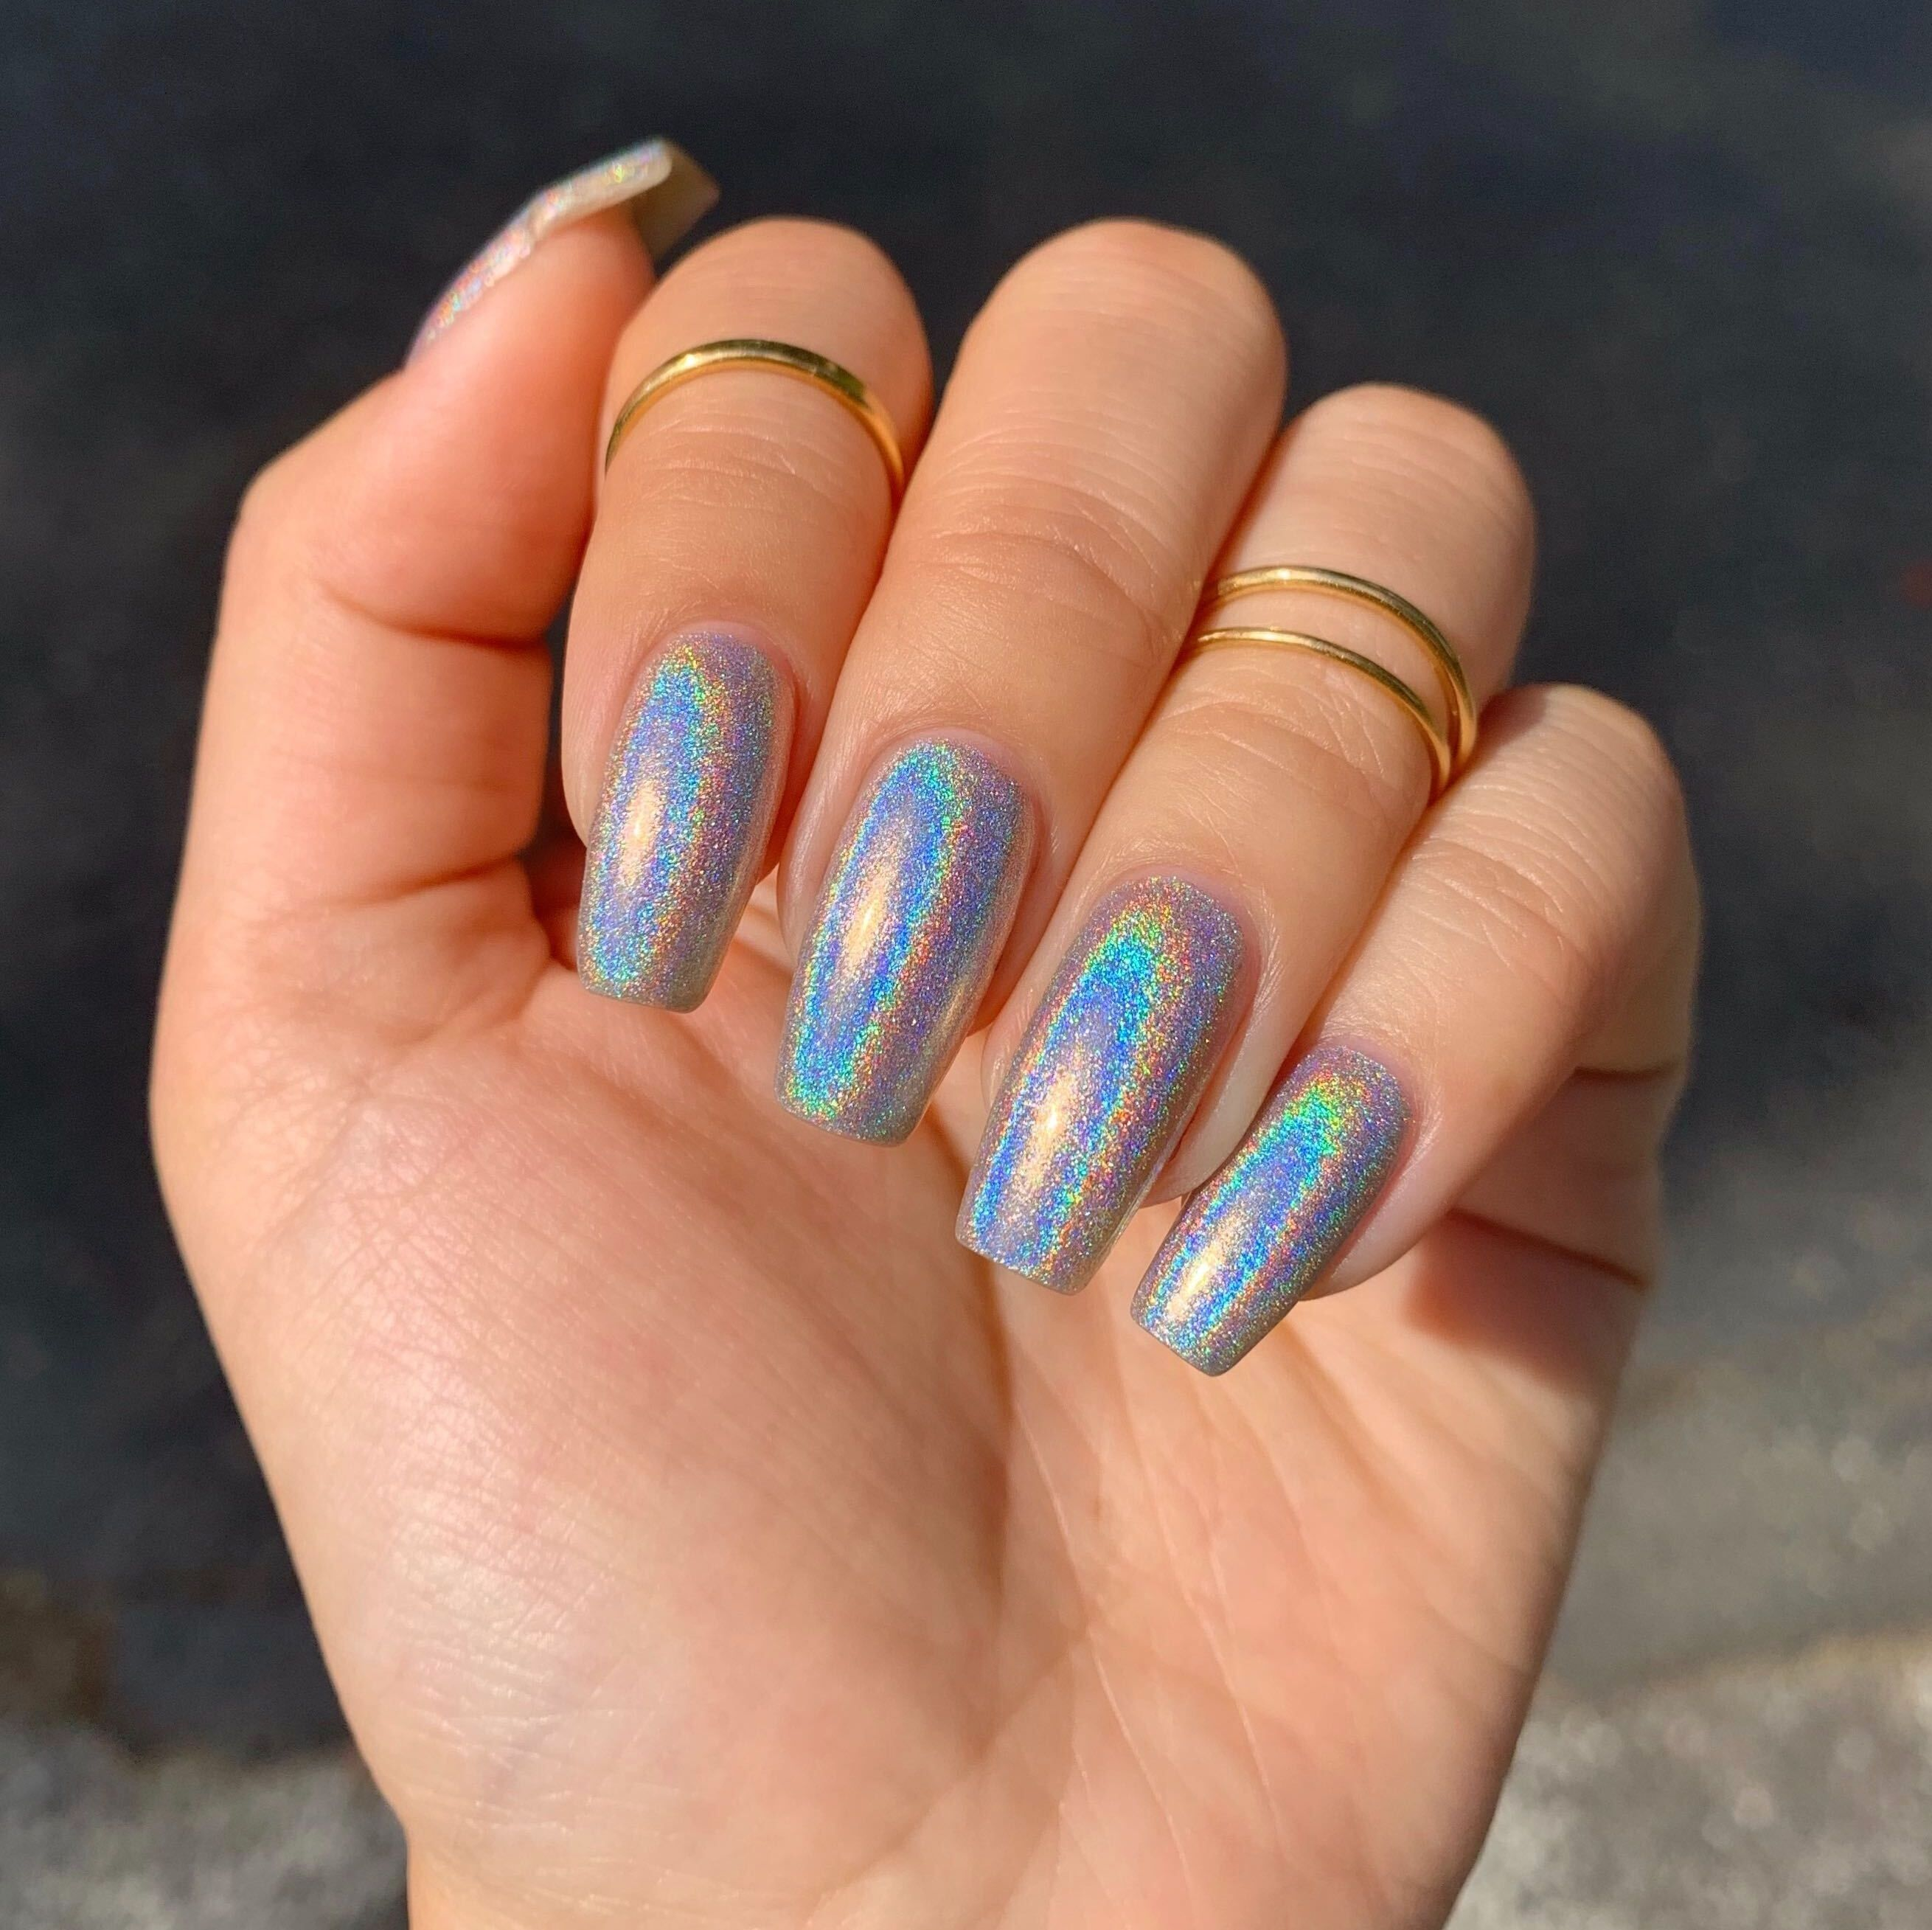 Moonflower In 2021 Holographic Nails Acrylic Nails Winter Nails Acrylic